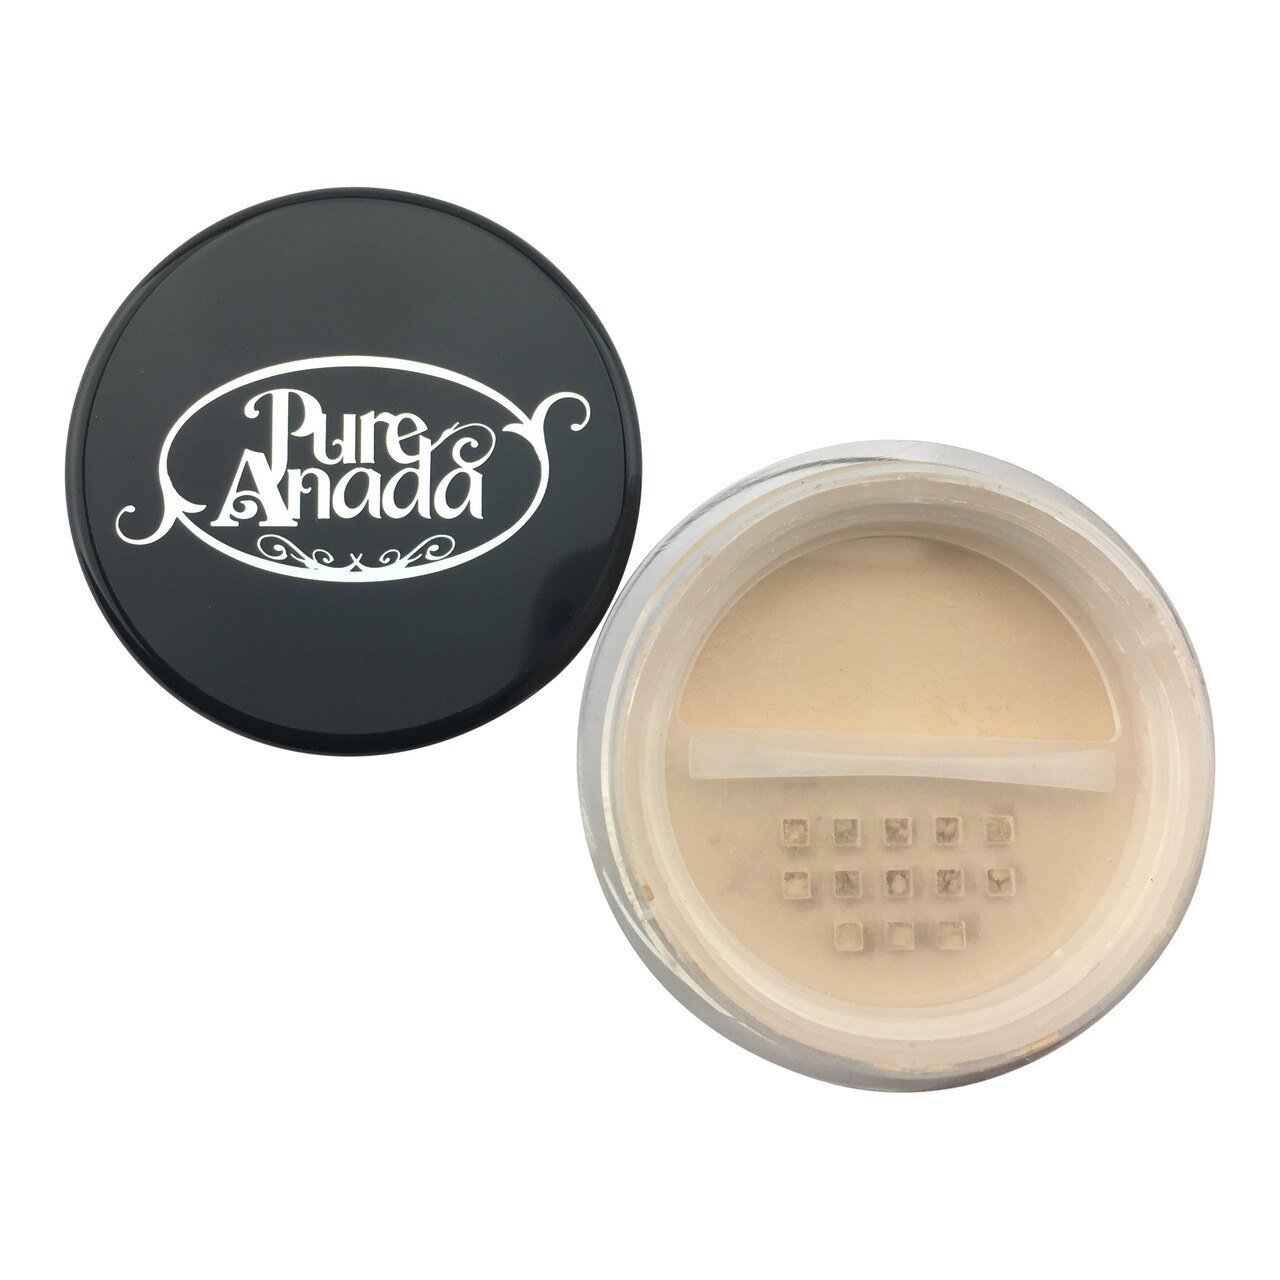 Loose Mineral Foundation - Sunkissed Canadian: Light (Neutral)-2